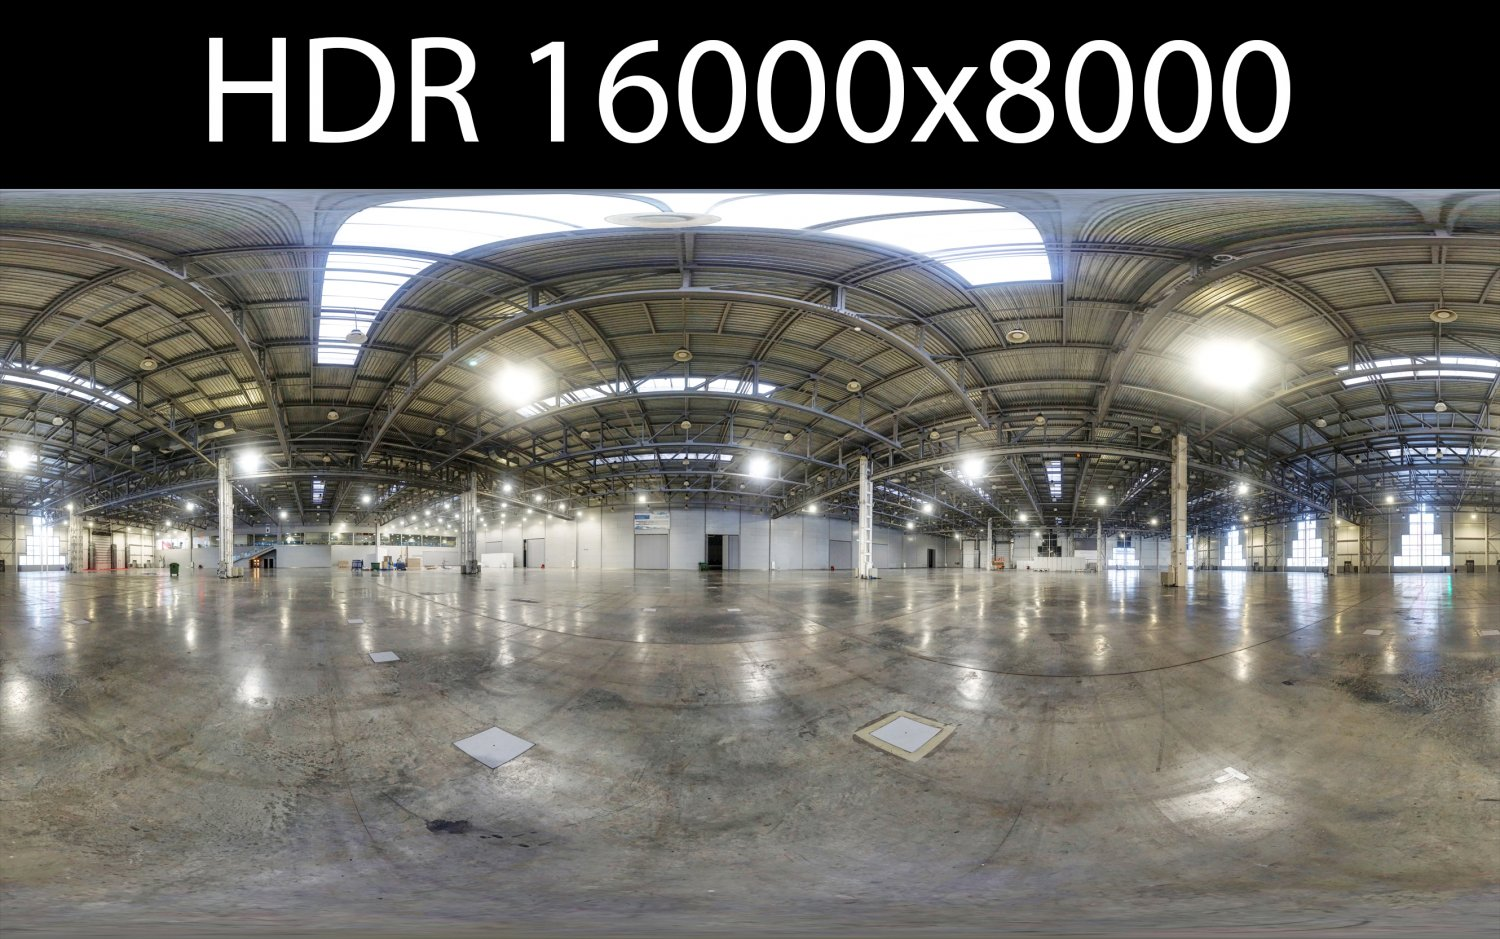 D Max Exhibition Hall : List of synonyms and antonyms the word hdri